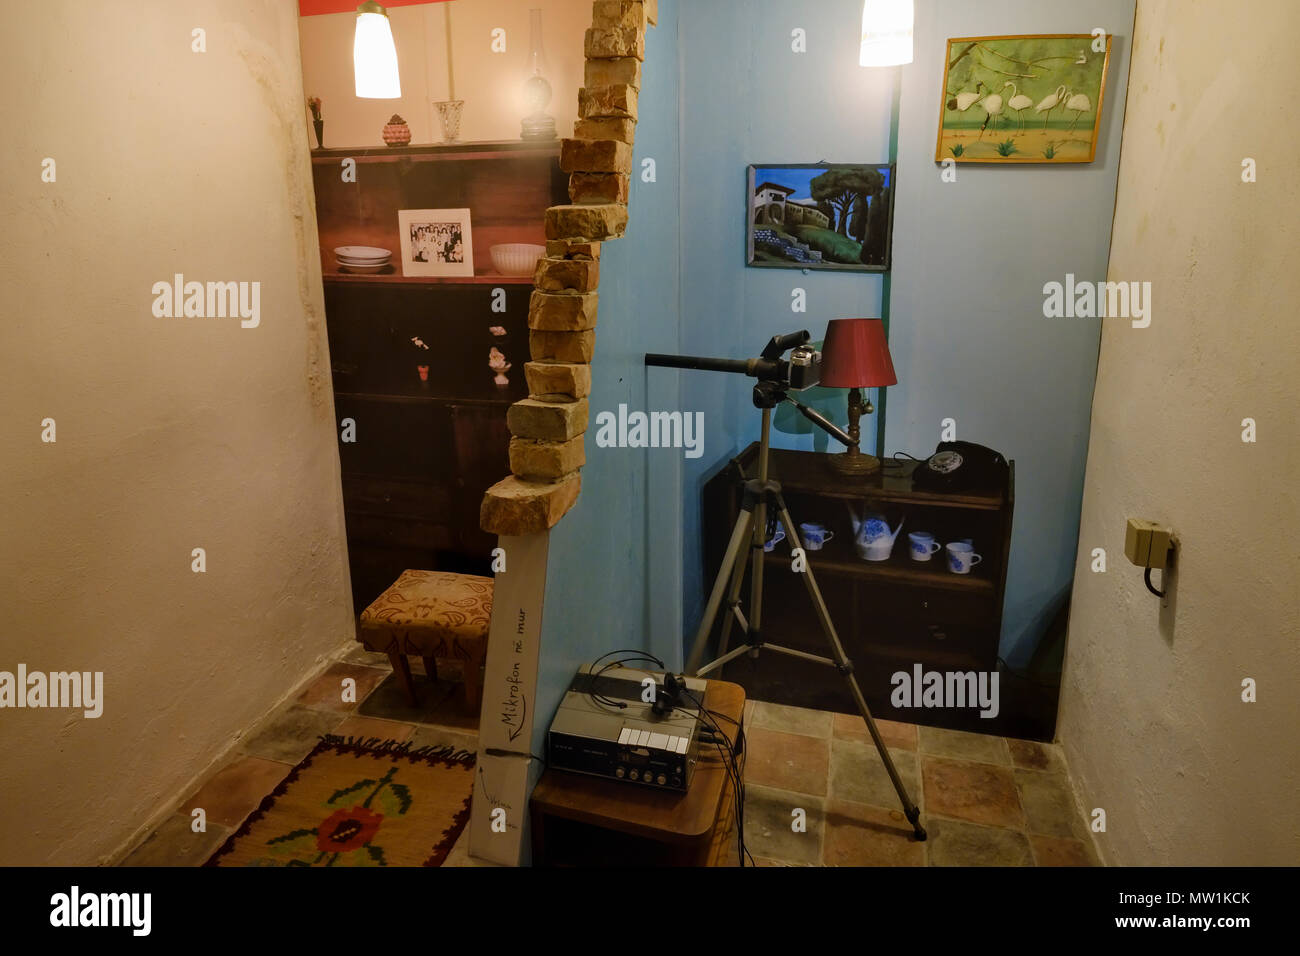 Espionage, Museum Bunk'Art 2, former nuclear bunker, city center, Tirana, Albania - Stock Image